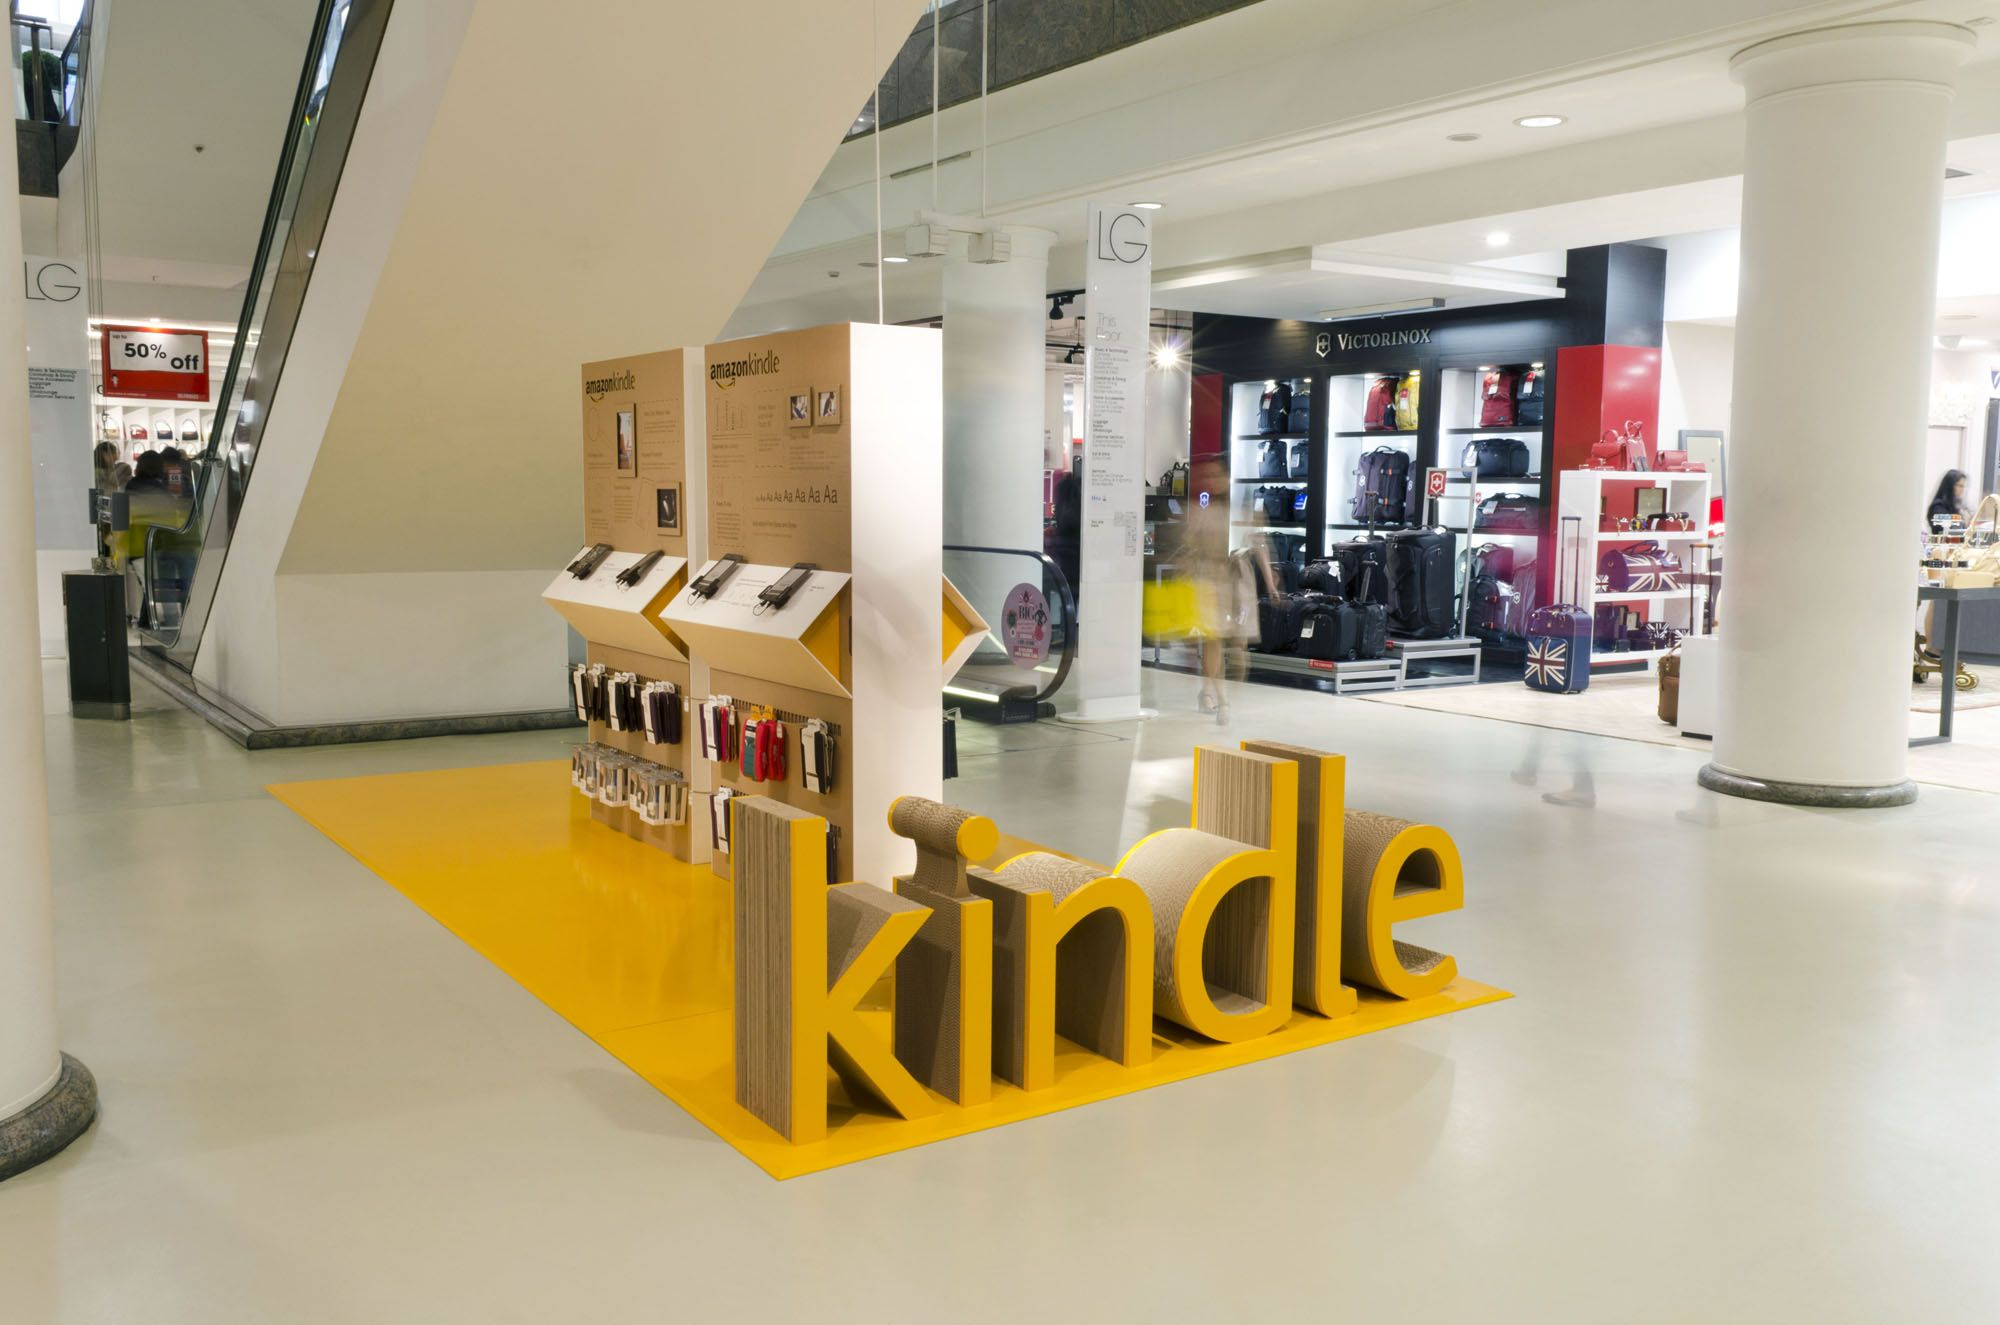 Amazon Kindle Pop Up Concession Retail Design By Pope Wainwright